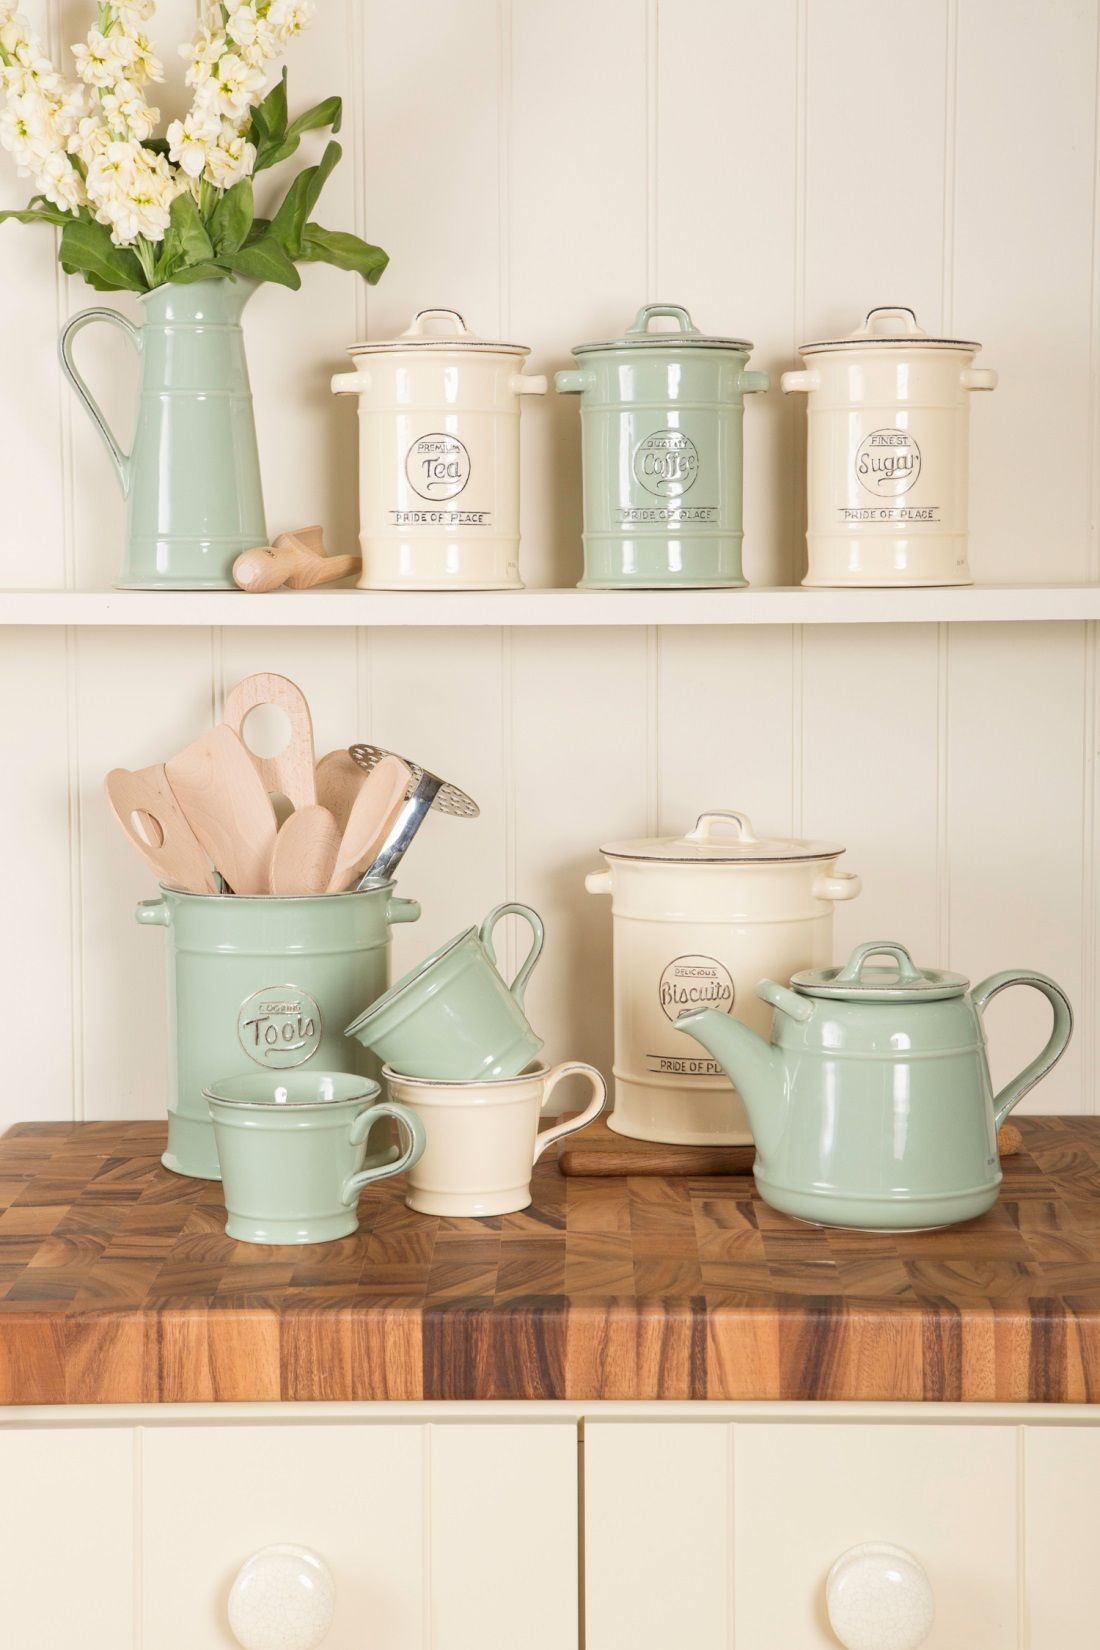 Woodware's vintage ceramic collection in Old Cream and Old